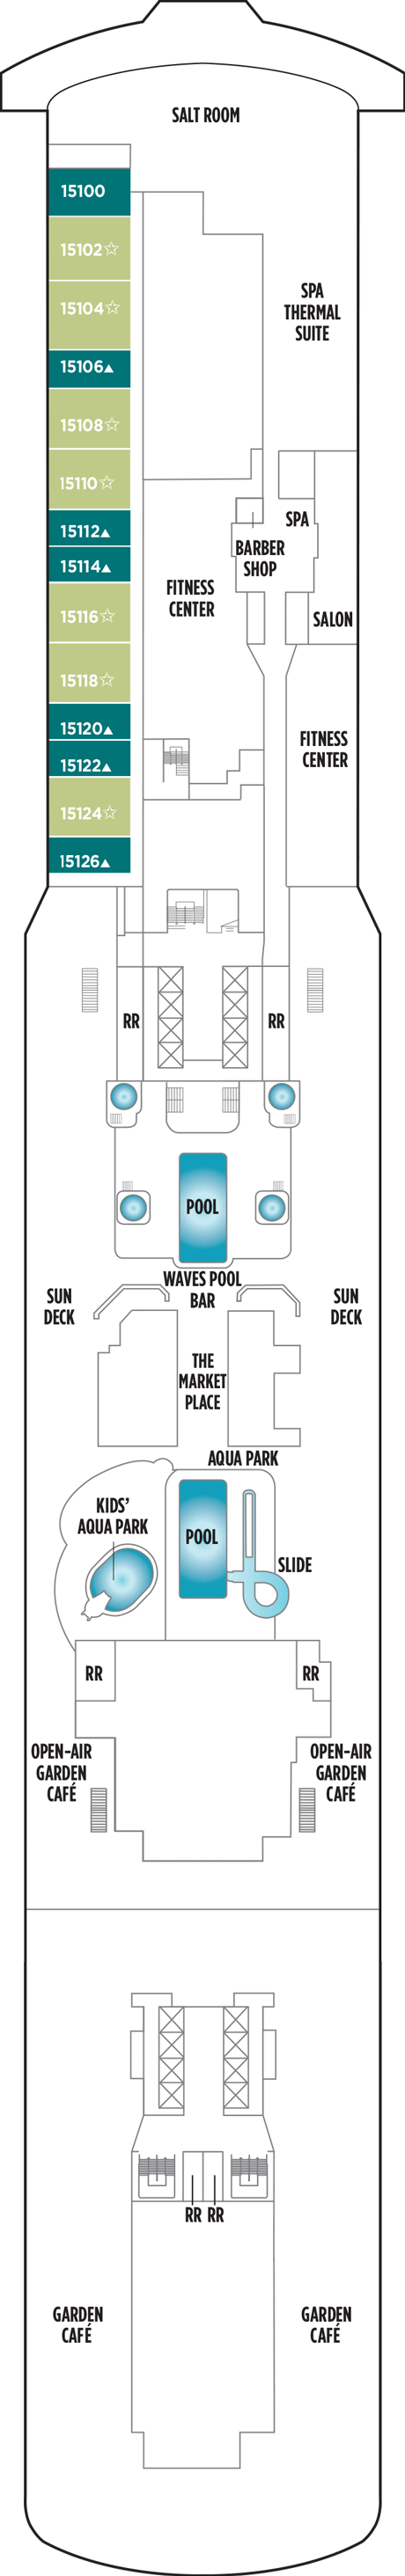 norwegian getaway cruise ship deck plans